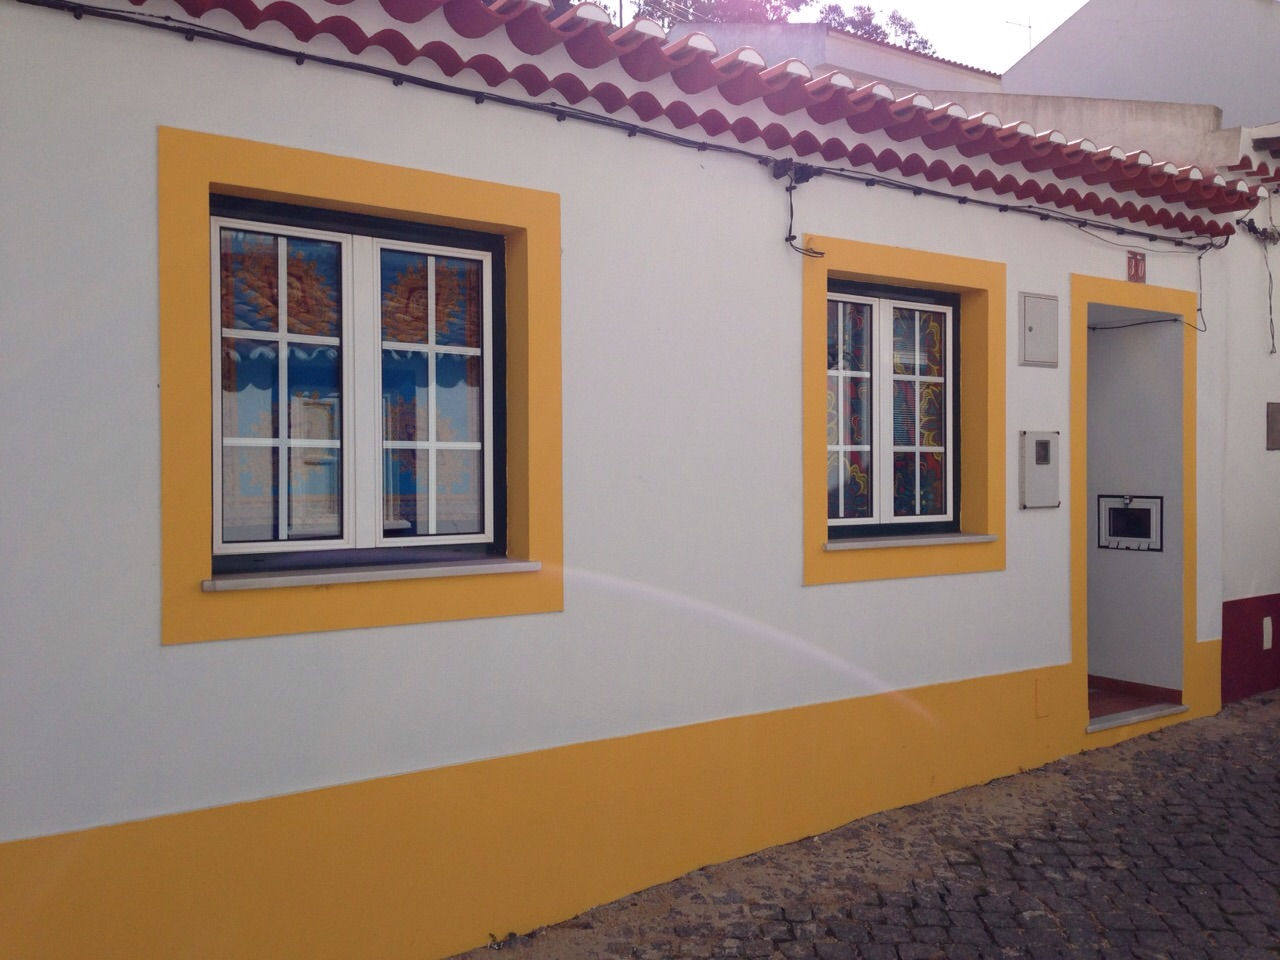 2 Bed Short Term Rental Cottage Odeceixe